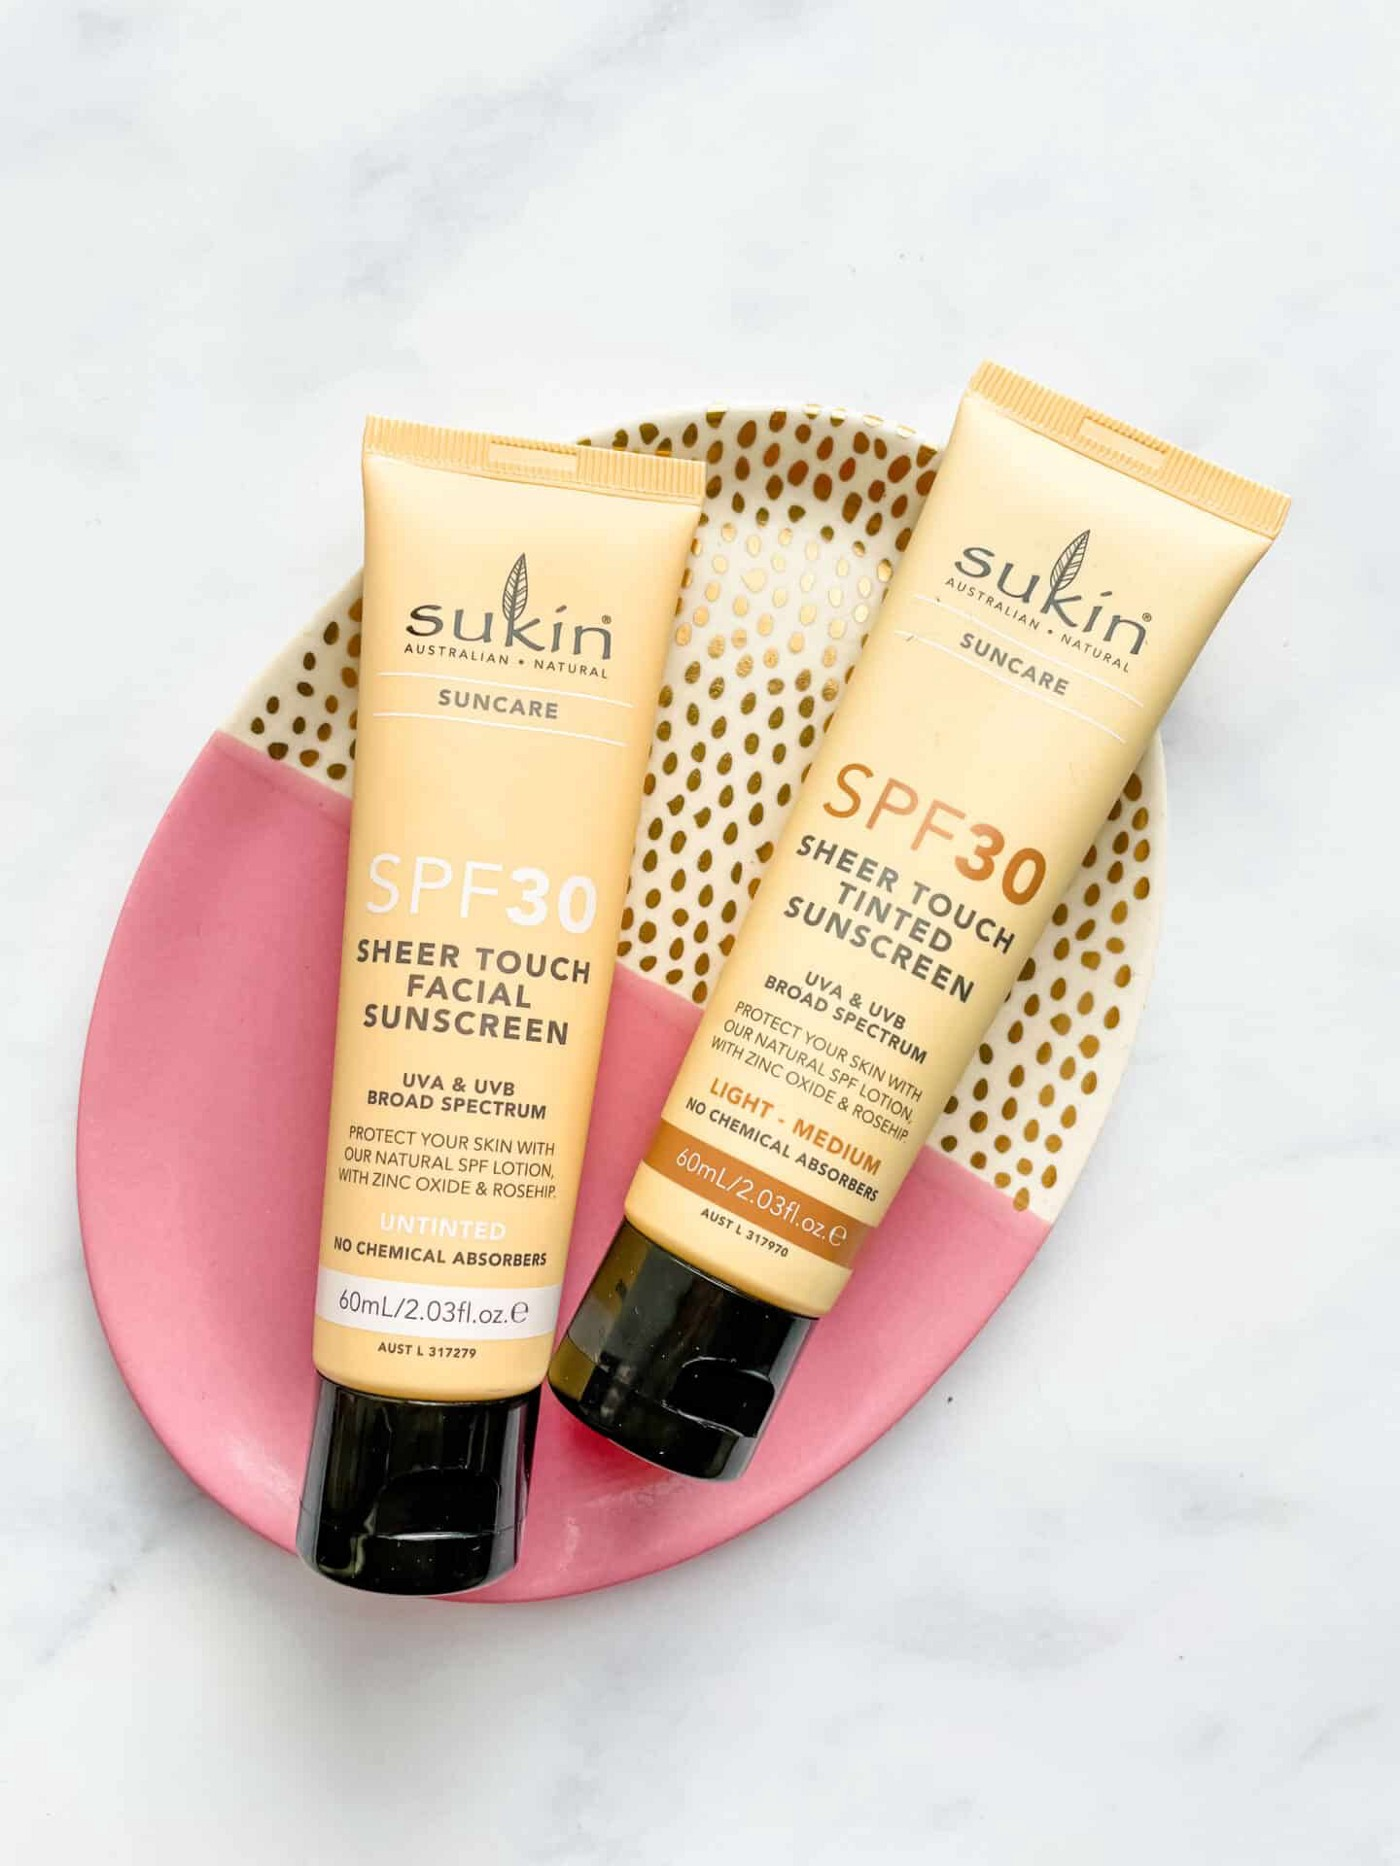 Pale yellow tubes of Sukin Reef Safe Sheer Touch SPF30 Sunscreen in Untinted and Light/Medium on a pink and gold plate